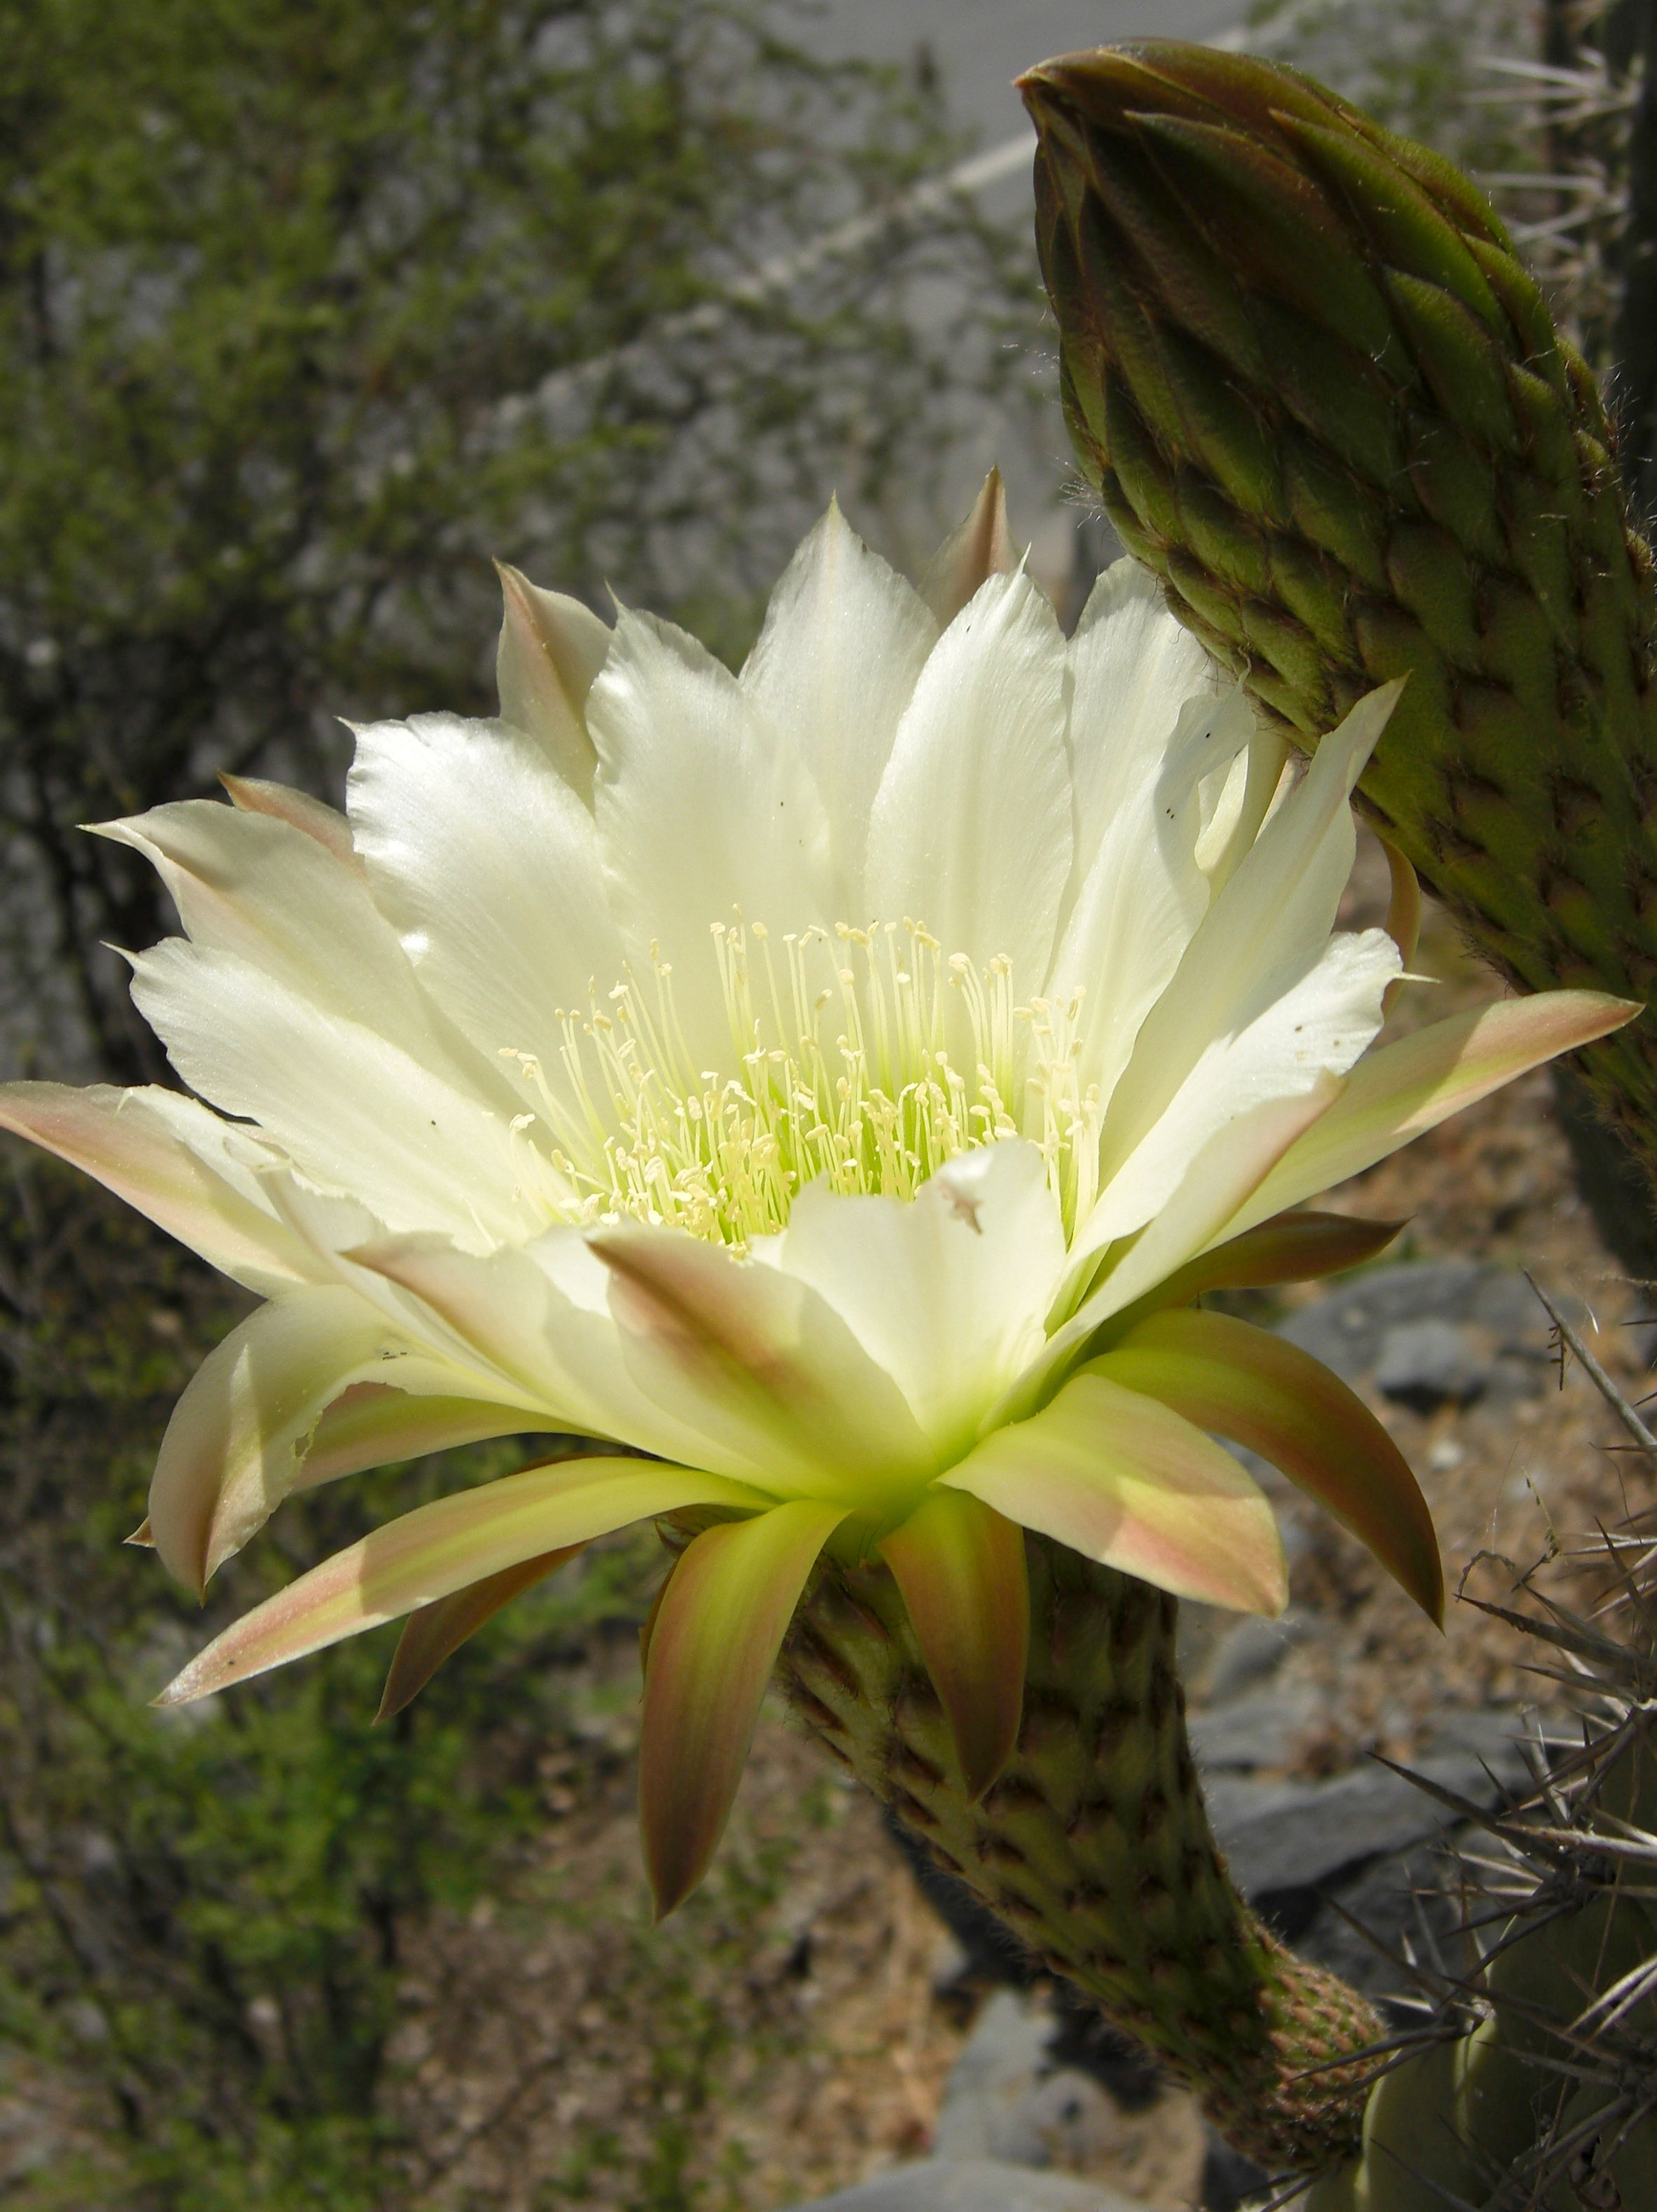 jason hollinger Photo flower of trichocereus chiloensis chilensis Echinopsis chiloensis